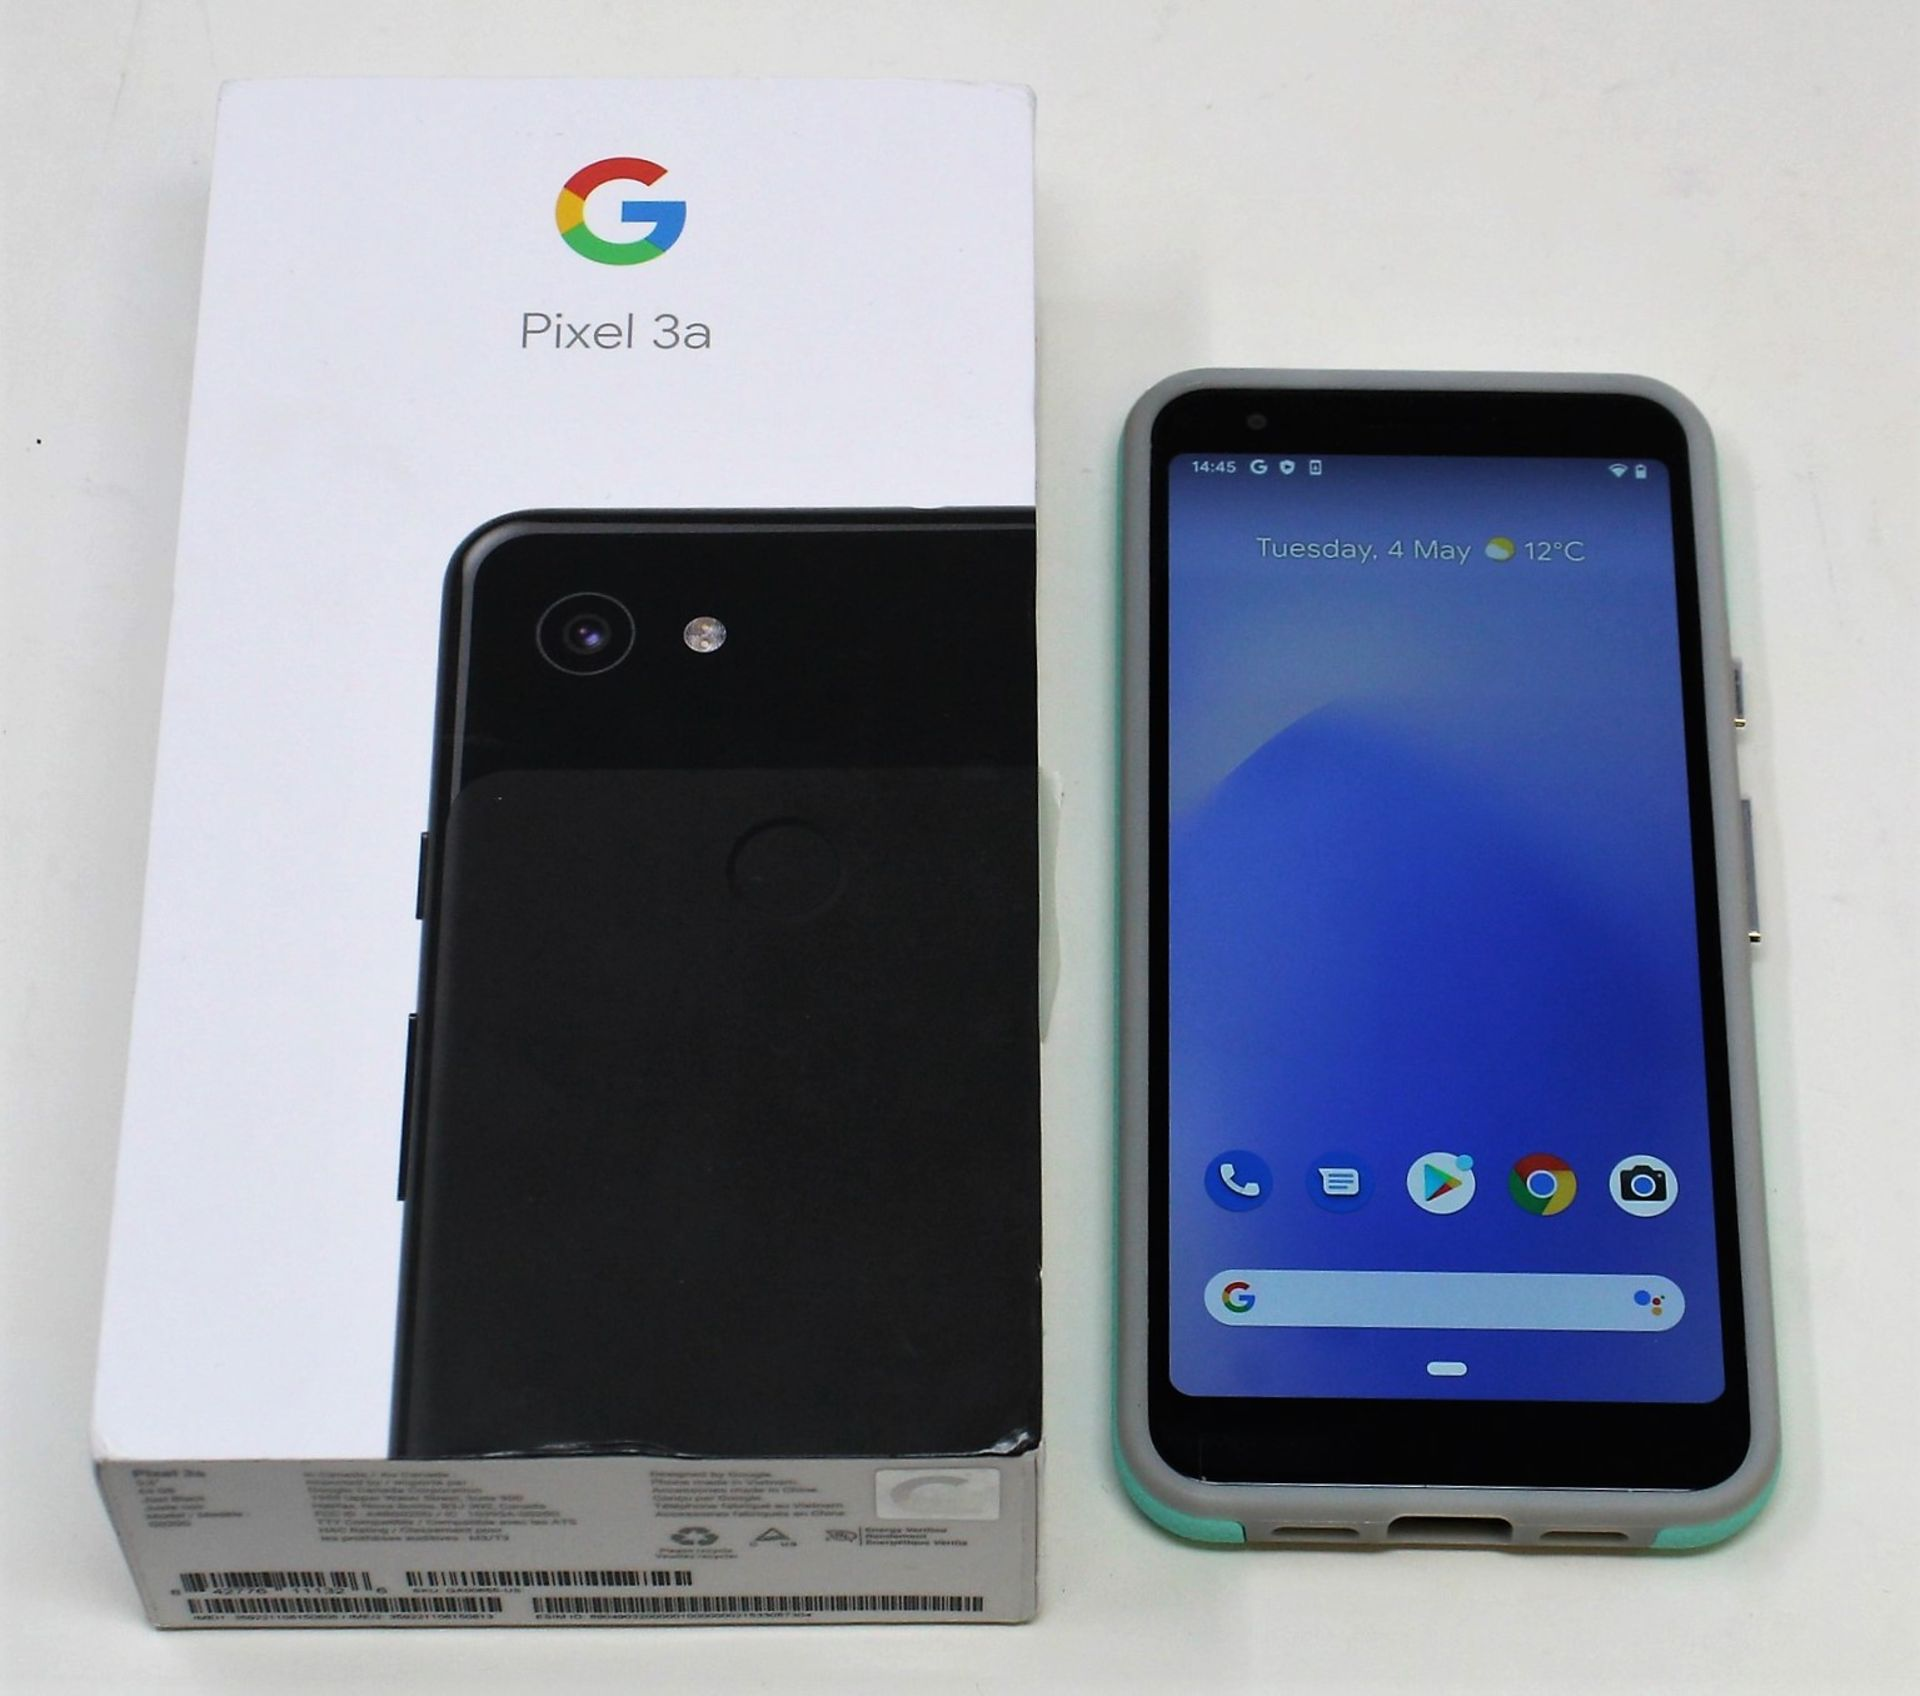 A pre-owned Google Pixel 3a G020G 64GB in Just Black (FRP clear) (Checkmend report ID: CM16922336-